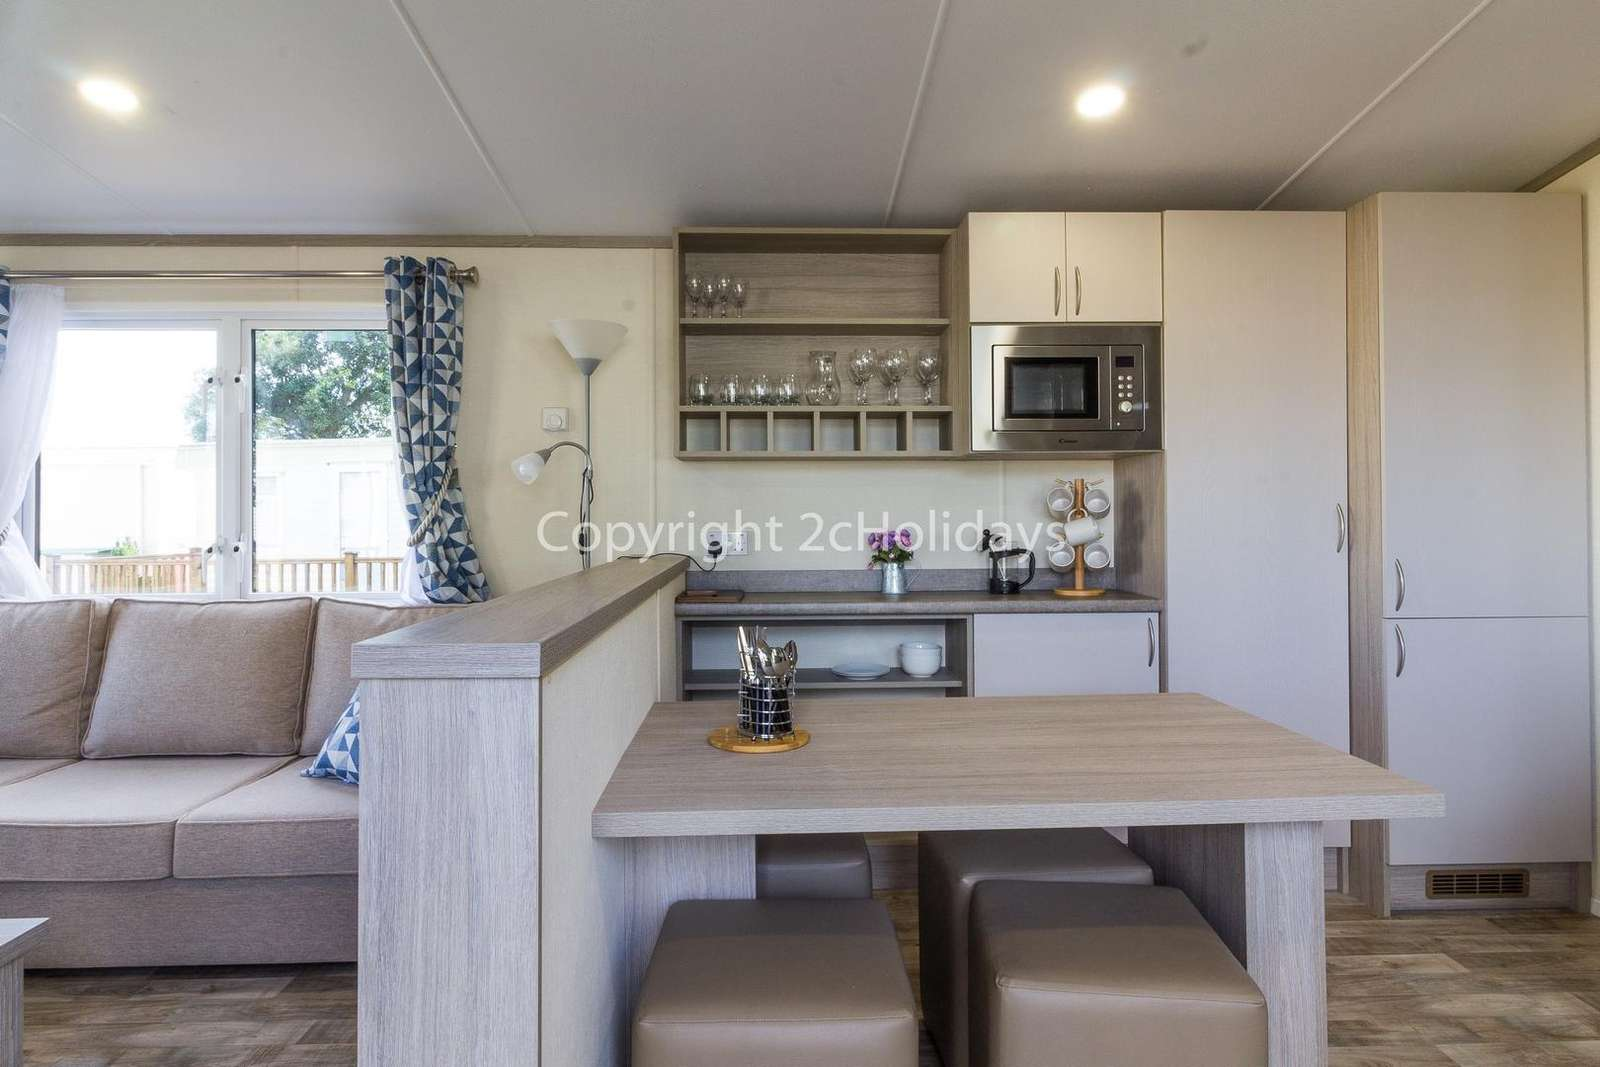 The perfect place to dine with your family or friends in this self-catering accommodation